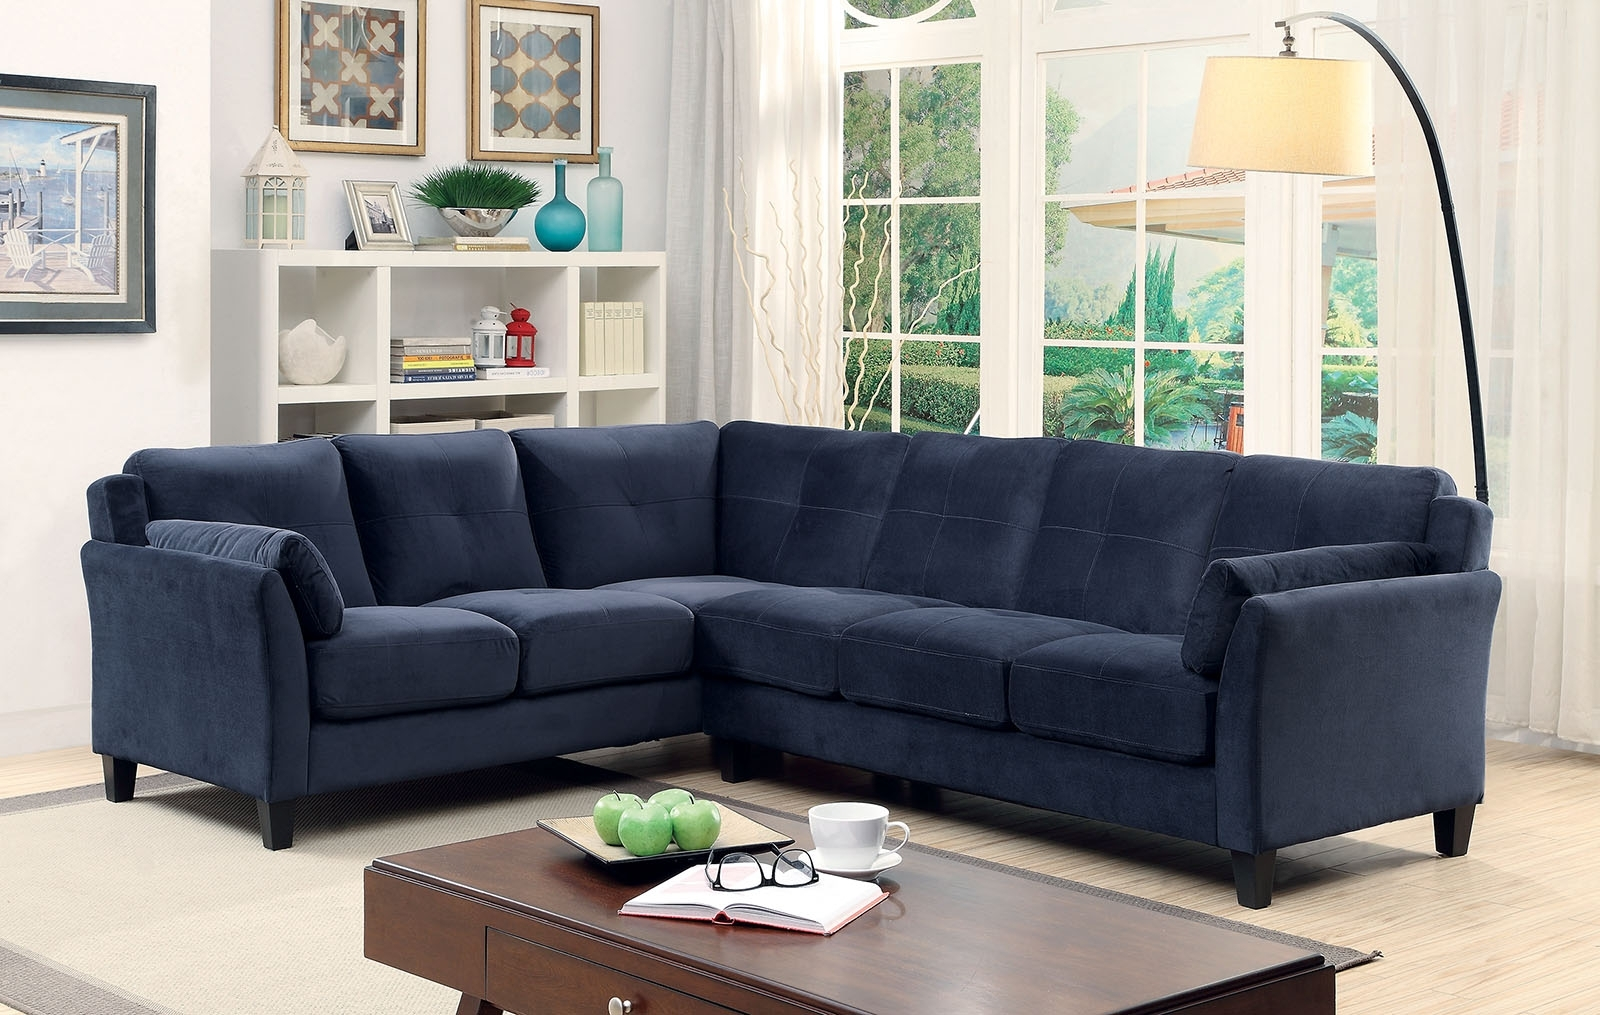 6368Nv Nvay Blue Contemporary Sectional Sofa Furniture Of America intended for Blue Sectional Sofas (Image 2 of 15)